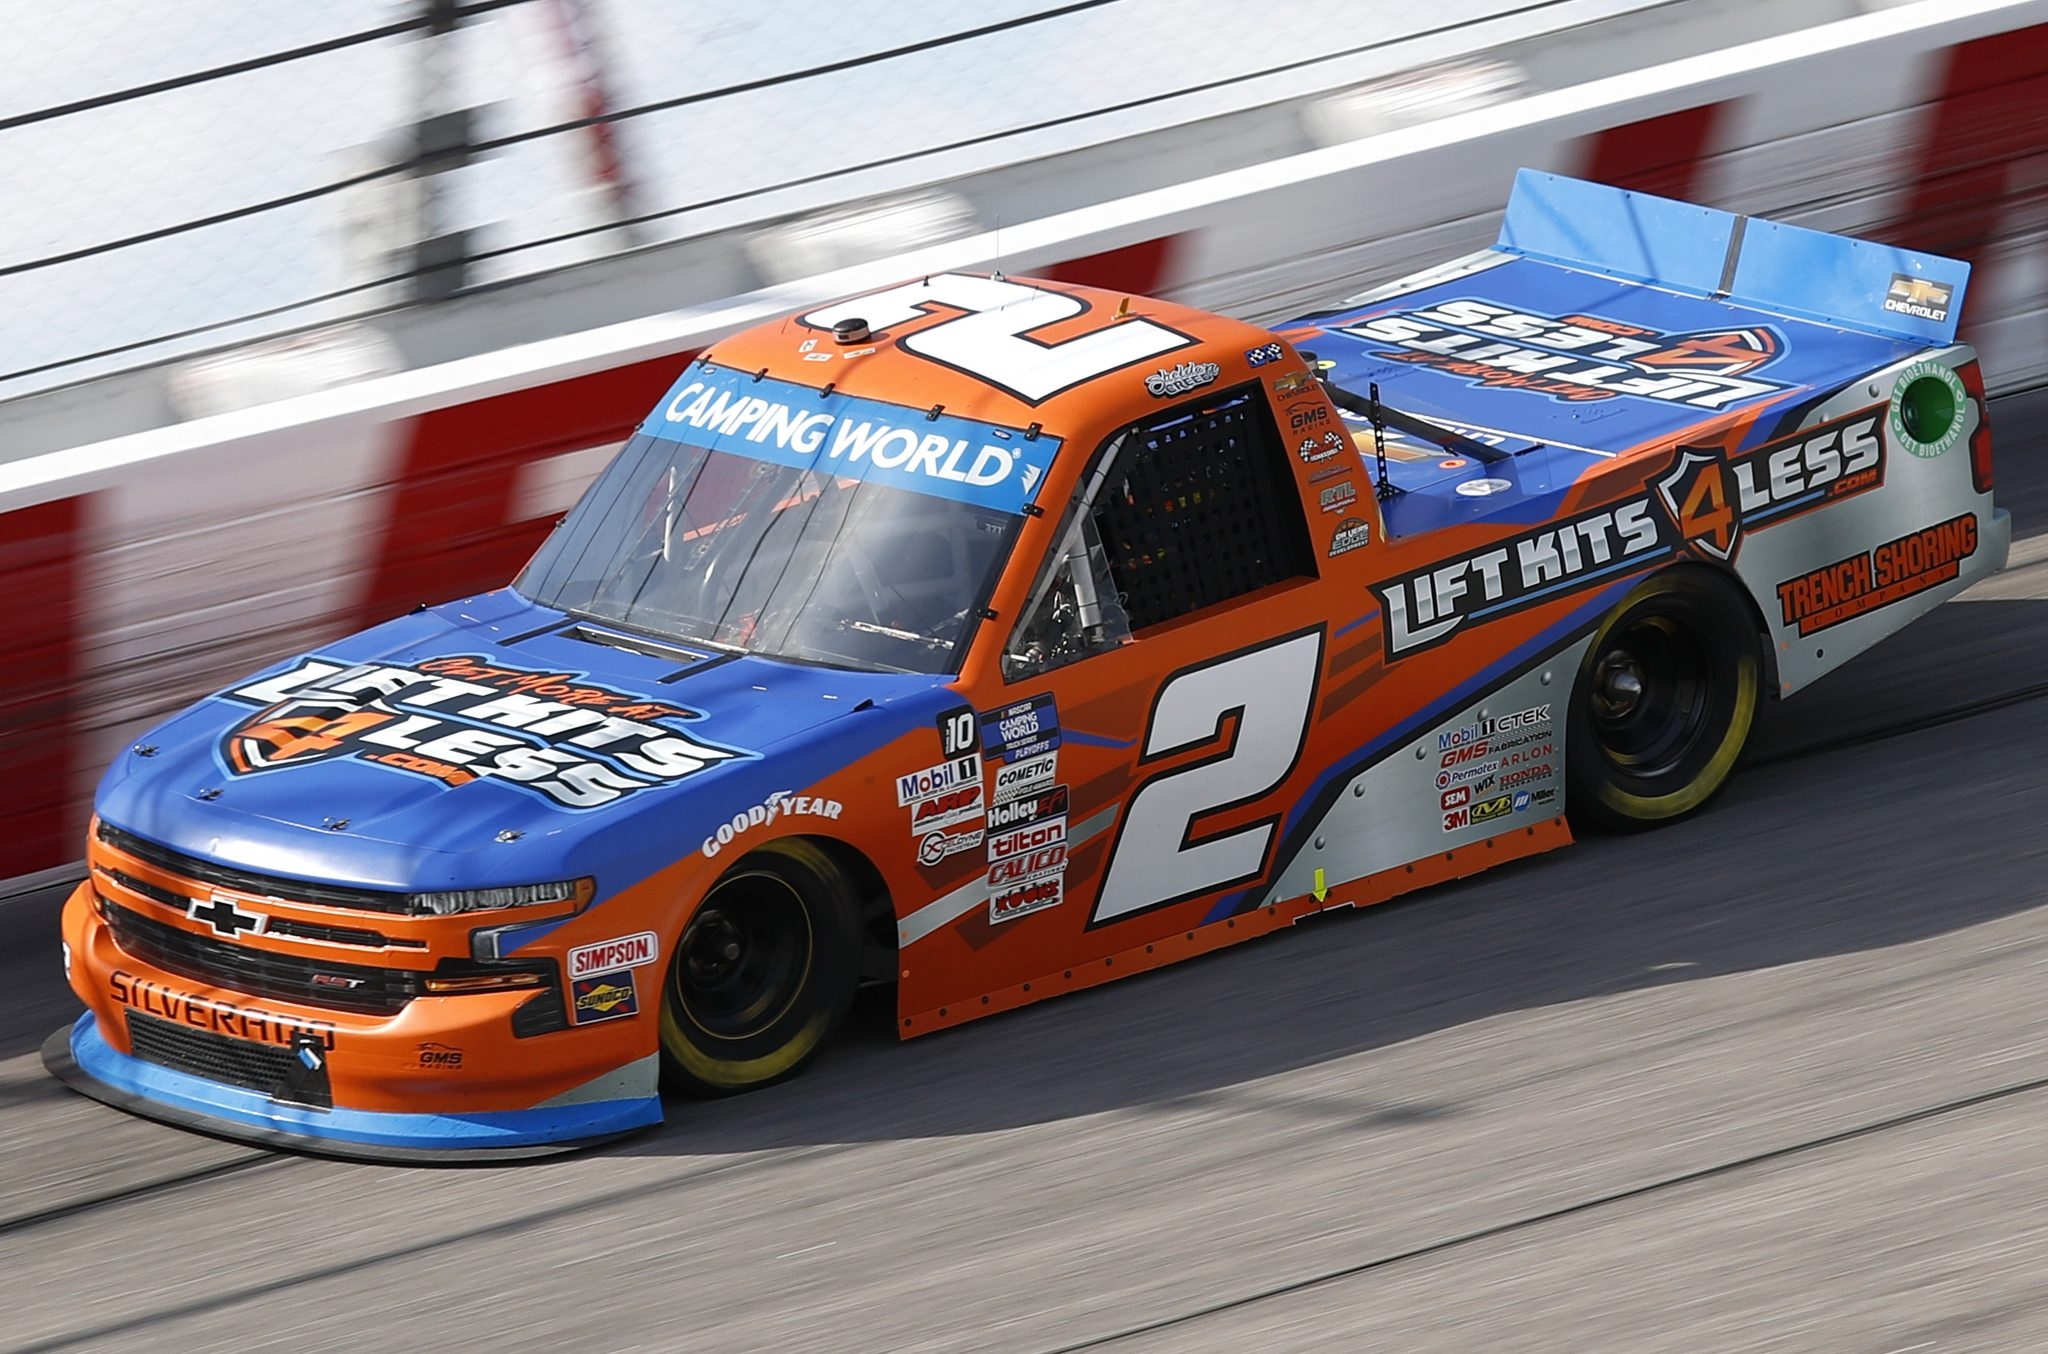 DARLINGTON, SOUTH CAROLINA - SEPTEMBER 05: Sheldon Creed, driver of the #2 Liftkits4less.com Chevrolet, drives during the NASCAR Camping World Truck Series In It To Win It 200 at Darlington Raceway on September 05, 2021 in Darlington, South Carolina. (Photo by Jared East/Getty Images)   Getty Images